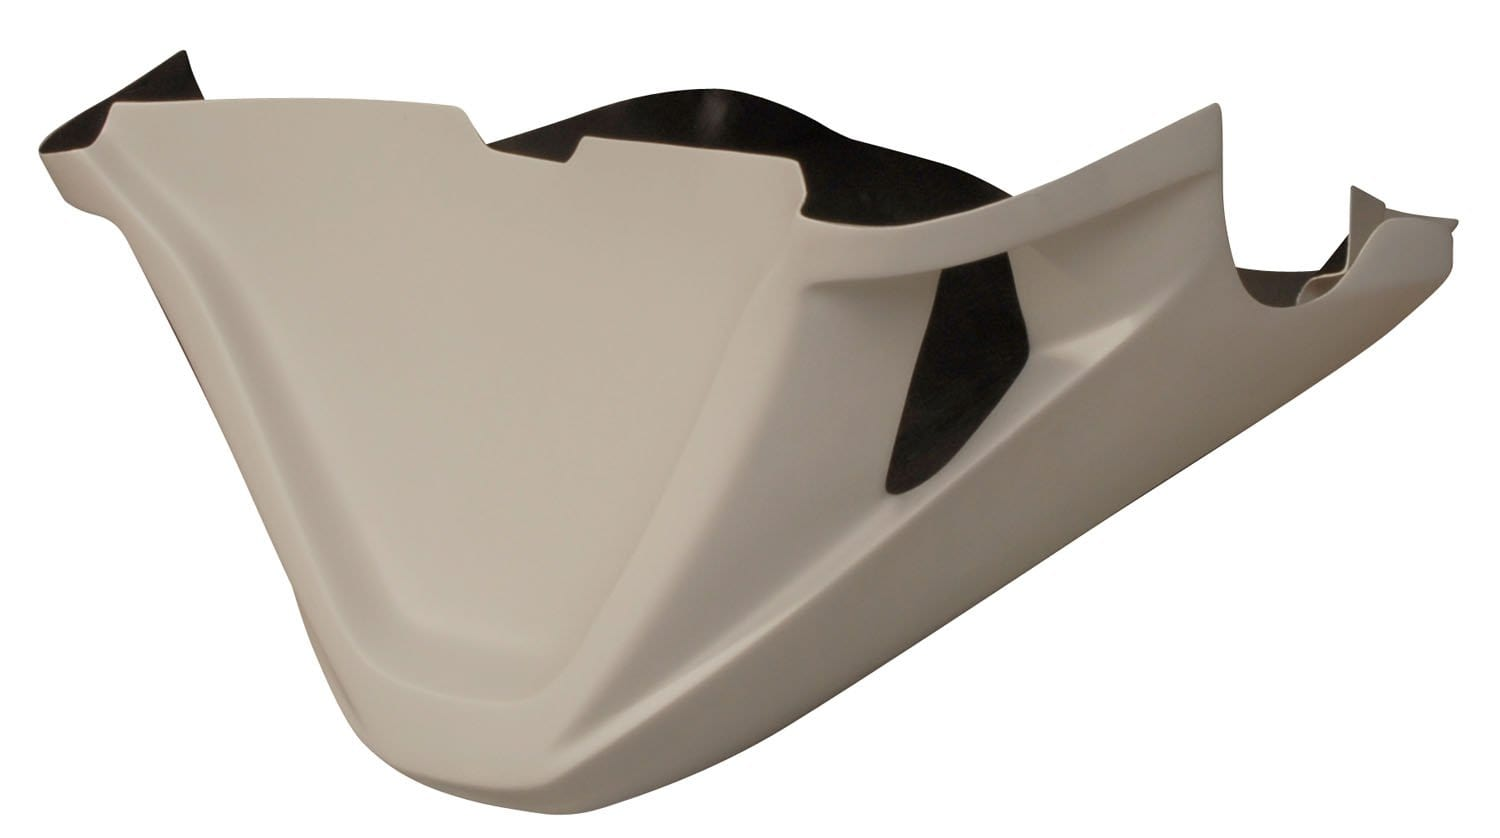 Honda CBR600 2005-2006 Lower Fairing - Pro Series - Woodcraft Technologies - Motorcycle Parts